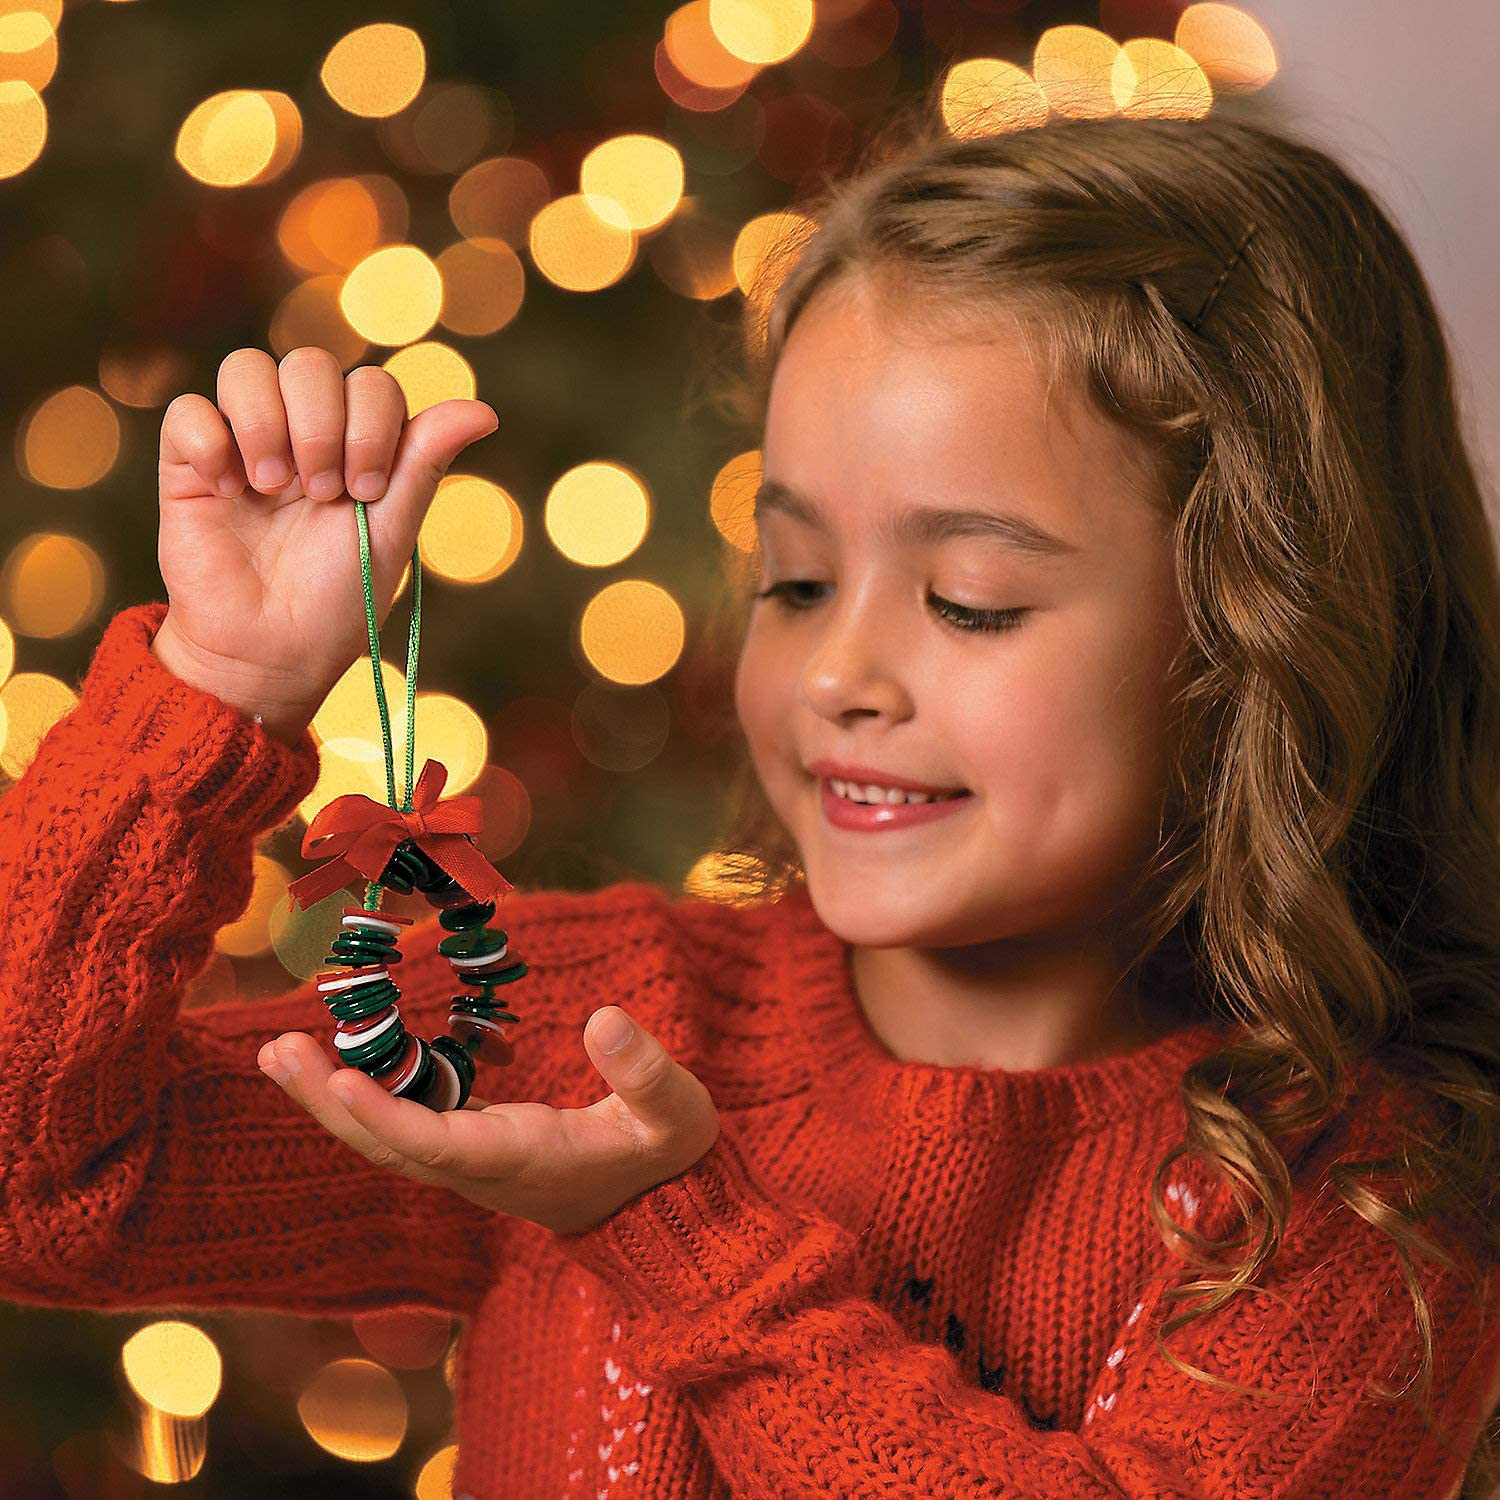 Button Wreath Ornament Craft Kit - Crafts for Kids and Fun Home Activities